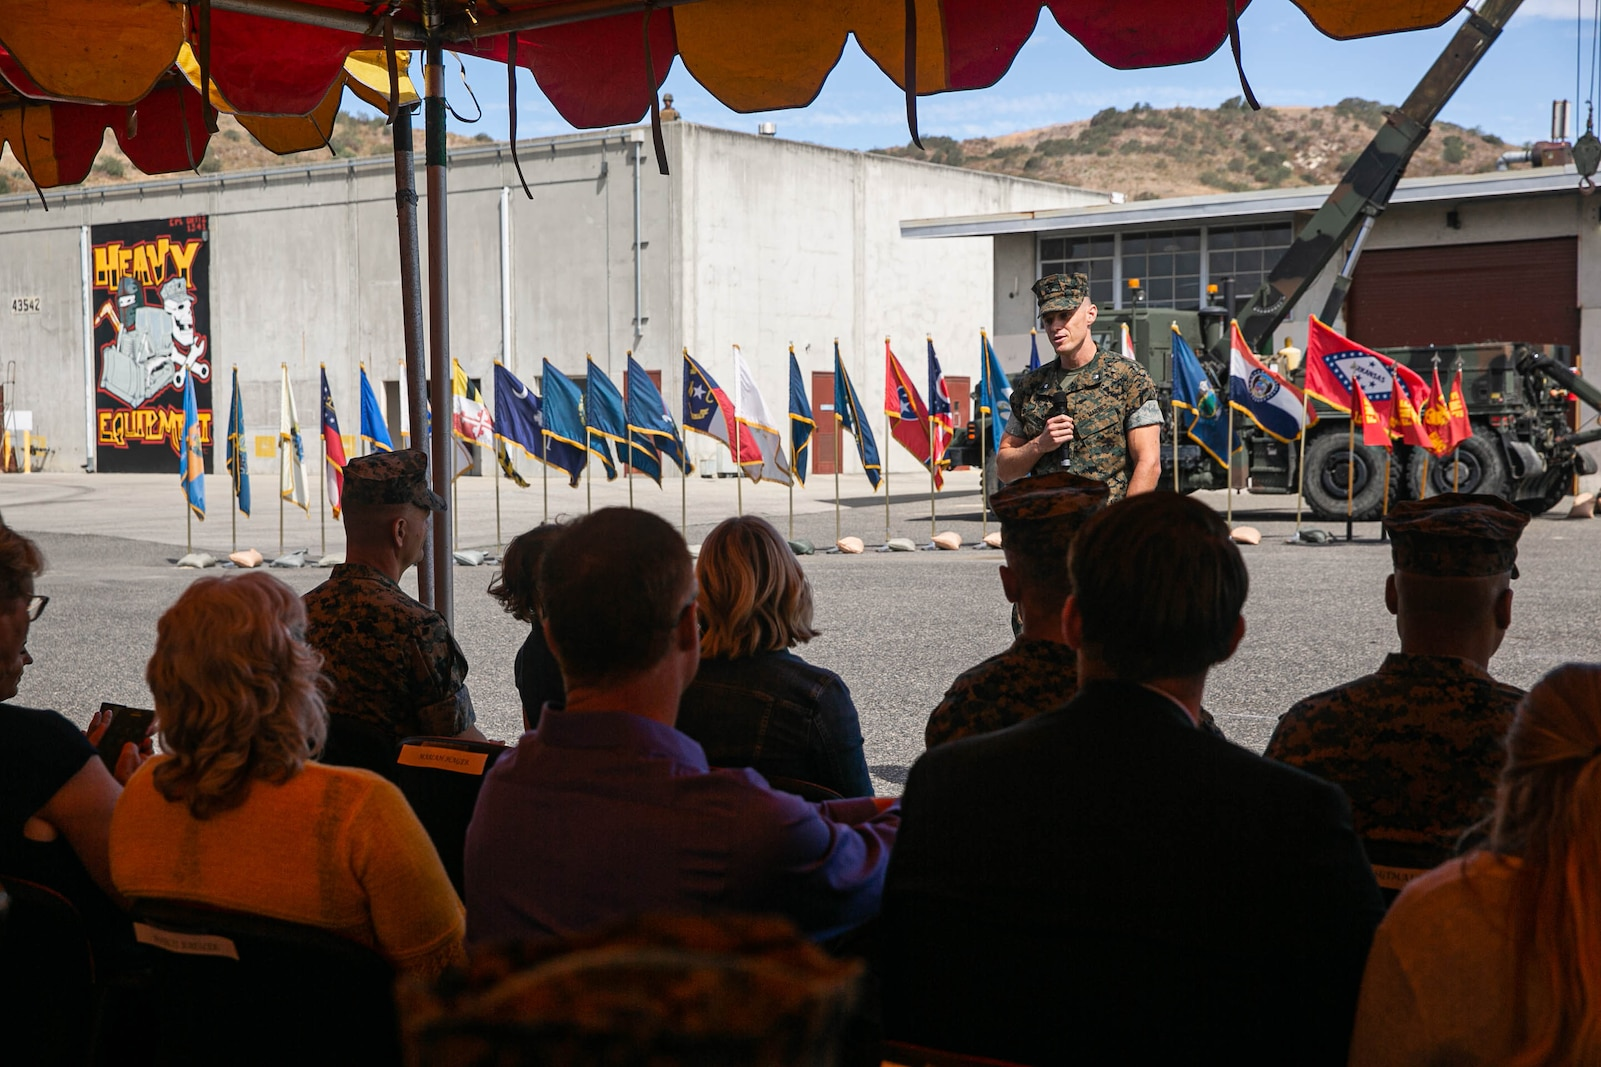 U.S. Marine Corps Lt. Col. Joseph R. Petkus, commanding officer, 1st Maintenance Battalion, gives remarks during the 1st Maint Bn change of command ceremony.